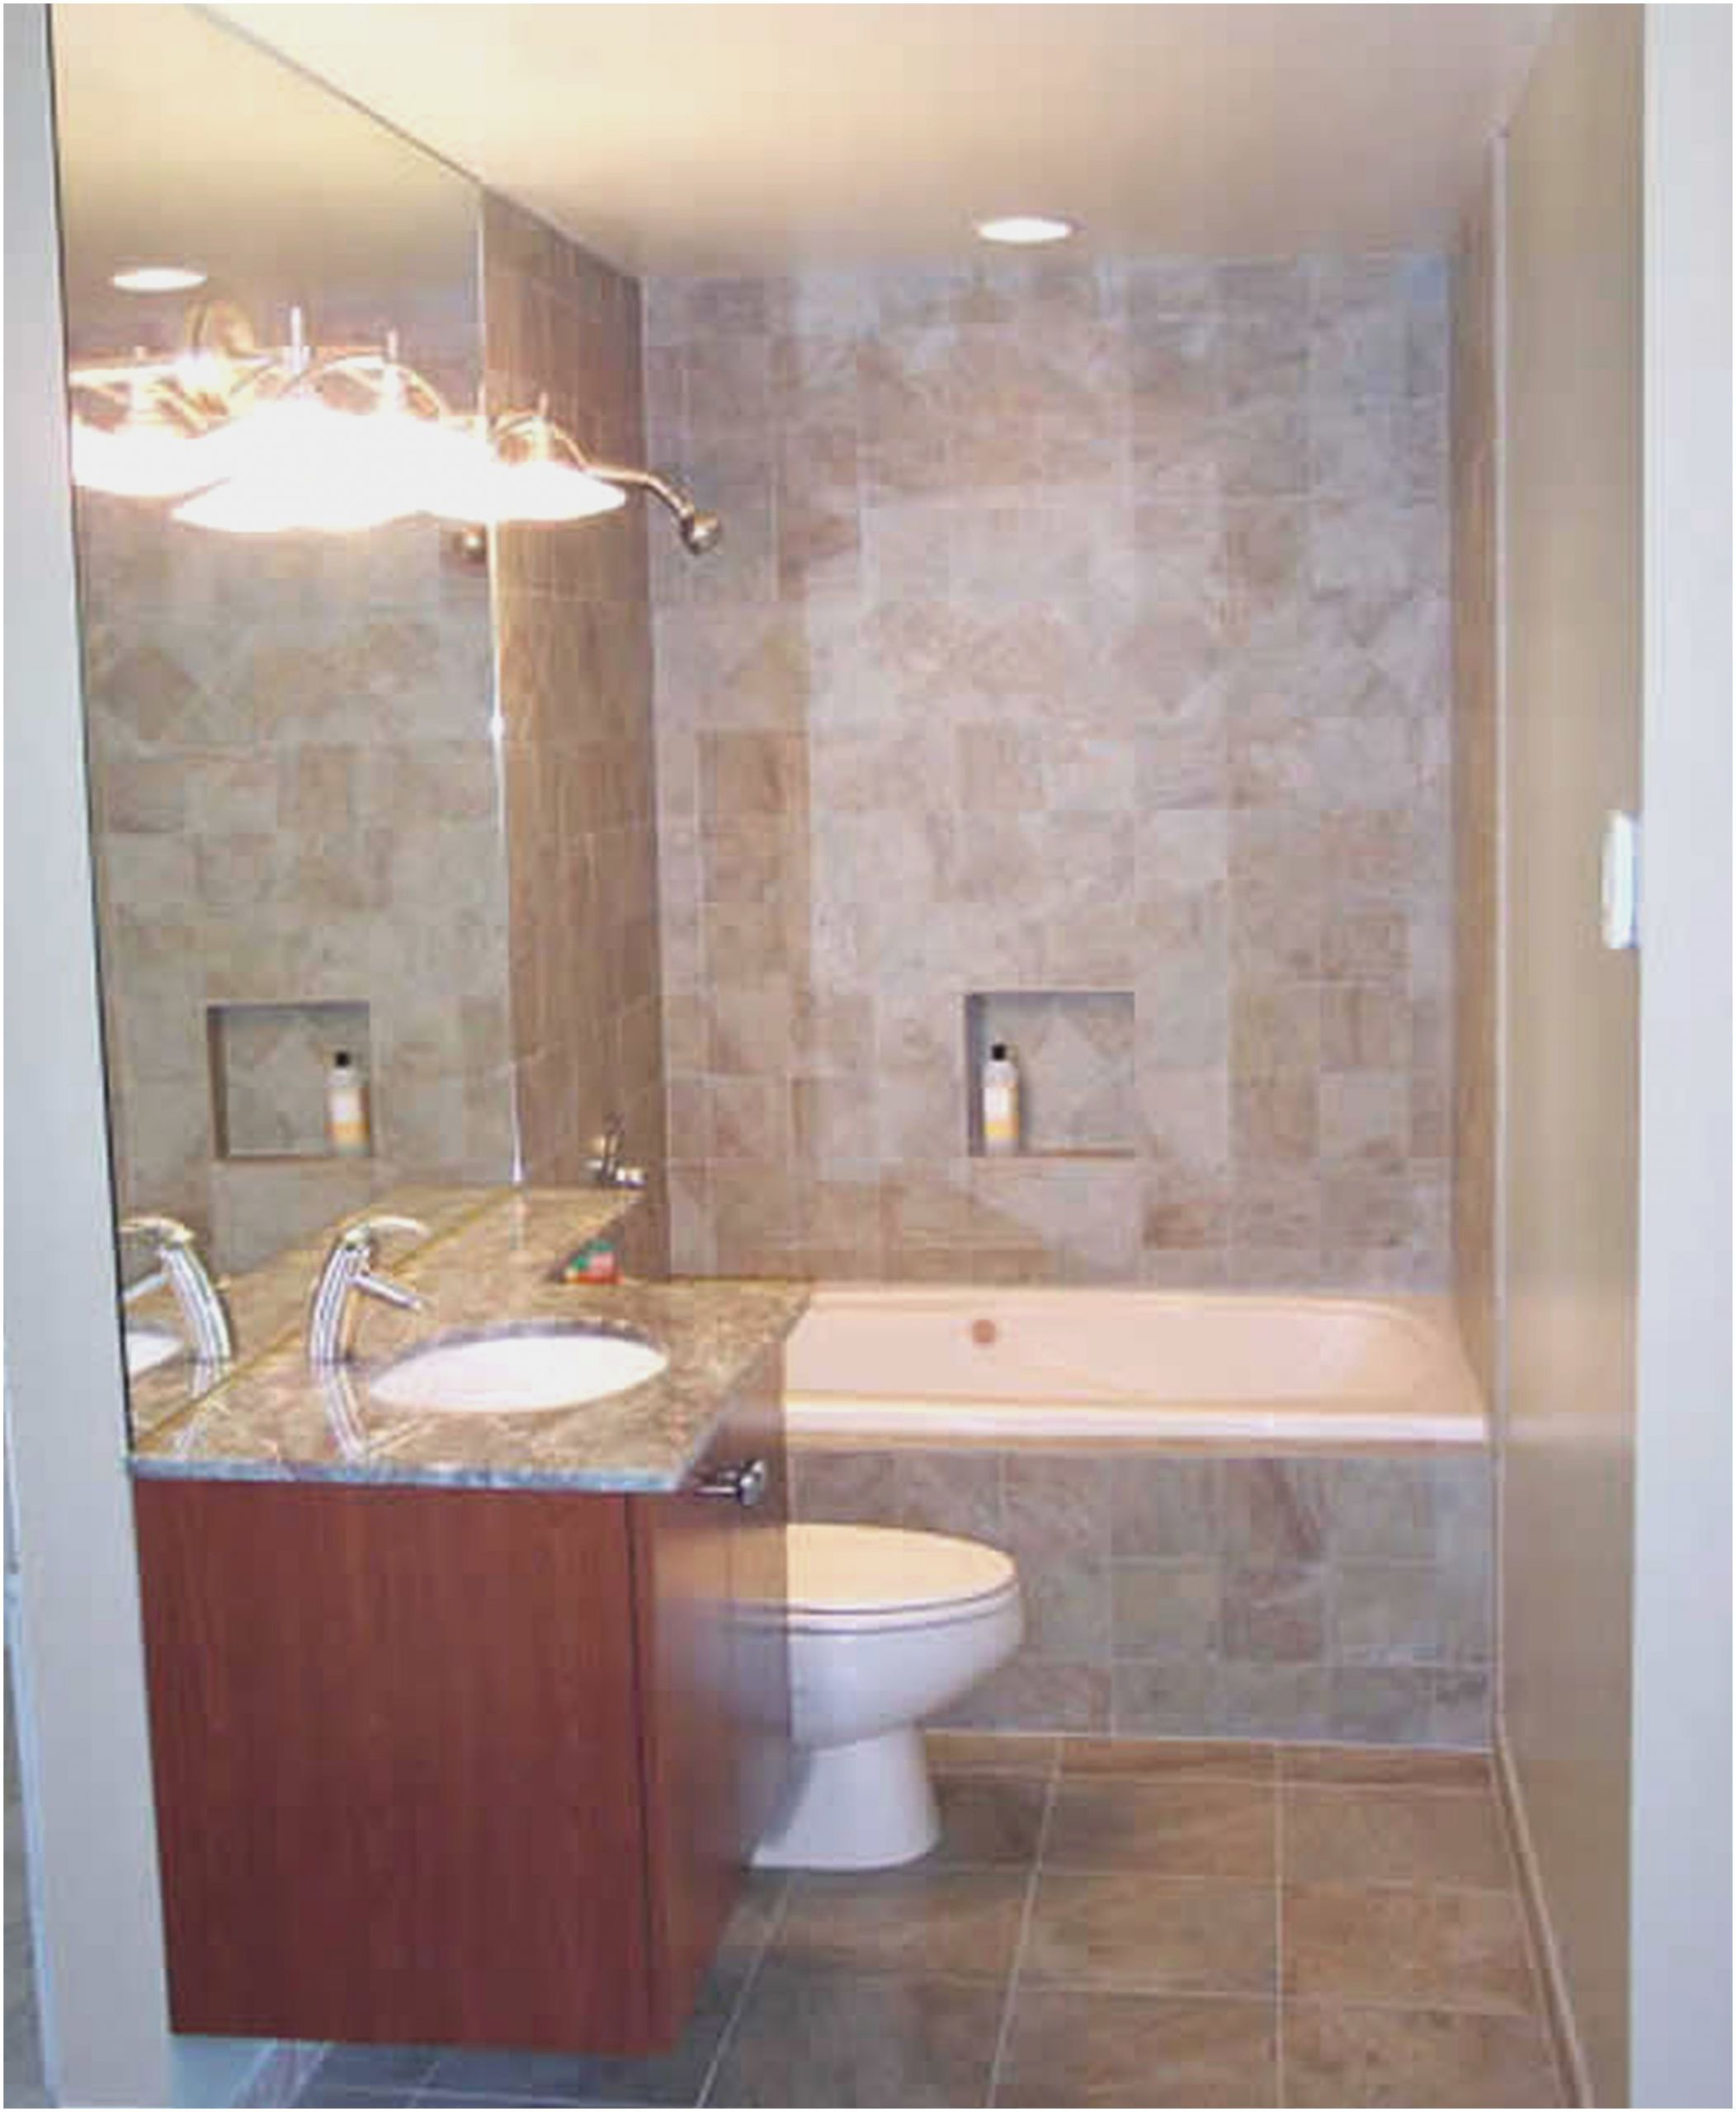 Simple Bathroom Designs For Small Spaces Without Bathtub Like Small Bathroom Designs Al In 2020 Bathroom Design Tool Bathroom Design Small Modern Small Bathroom Layout